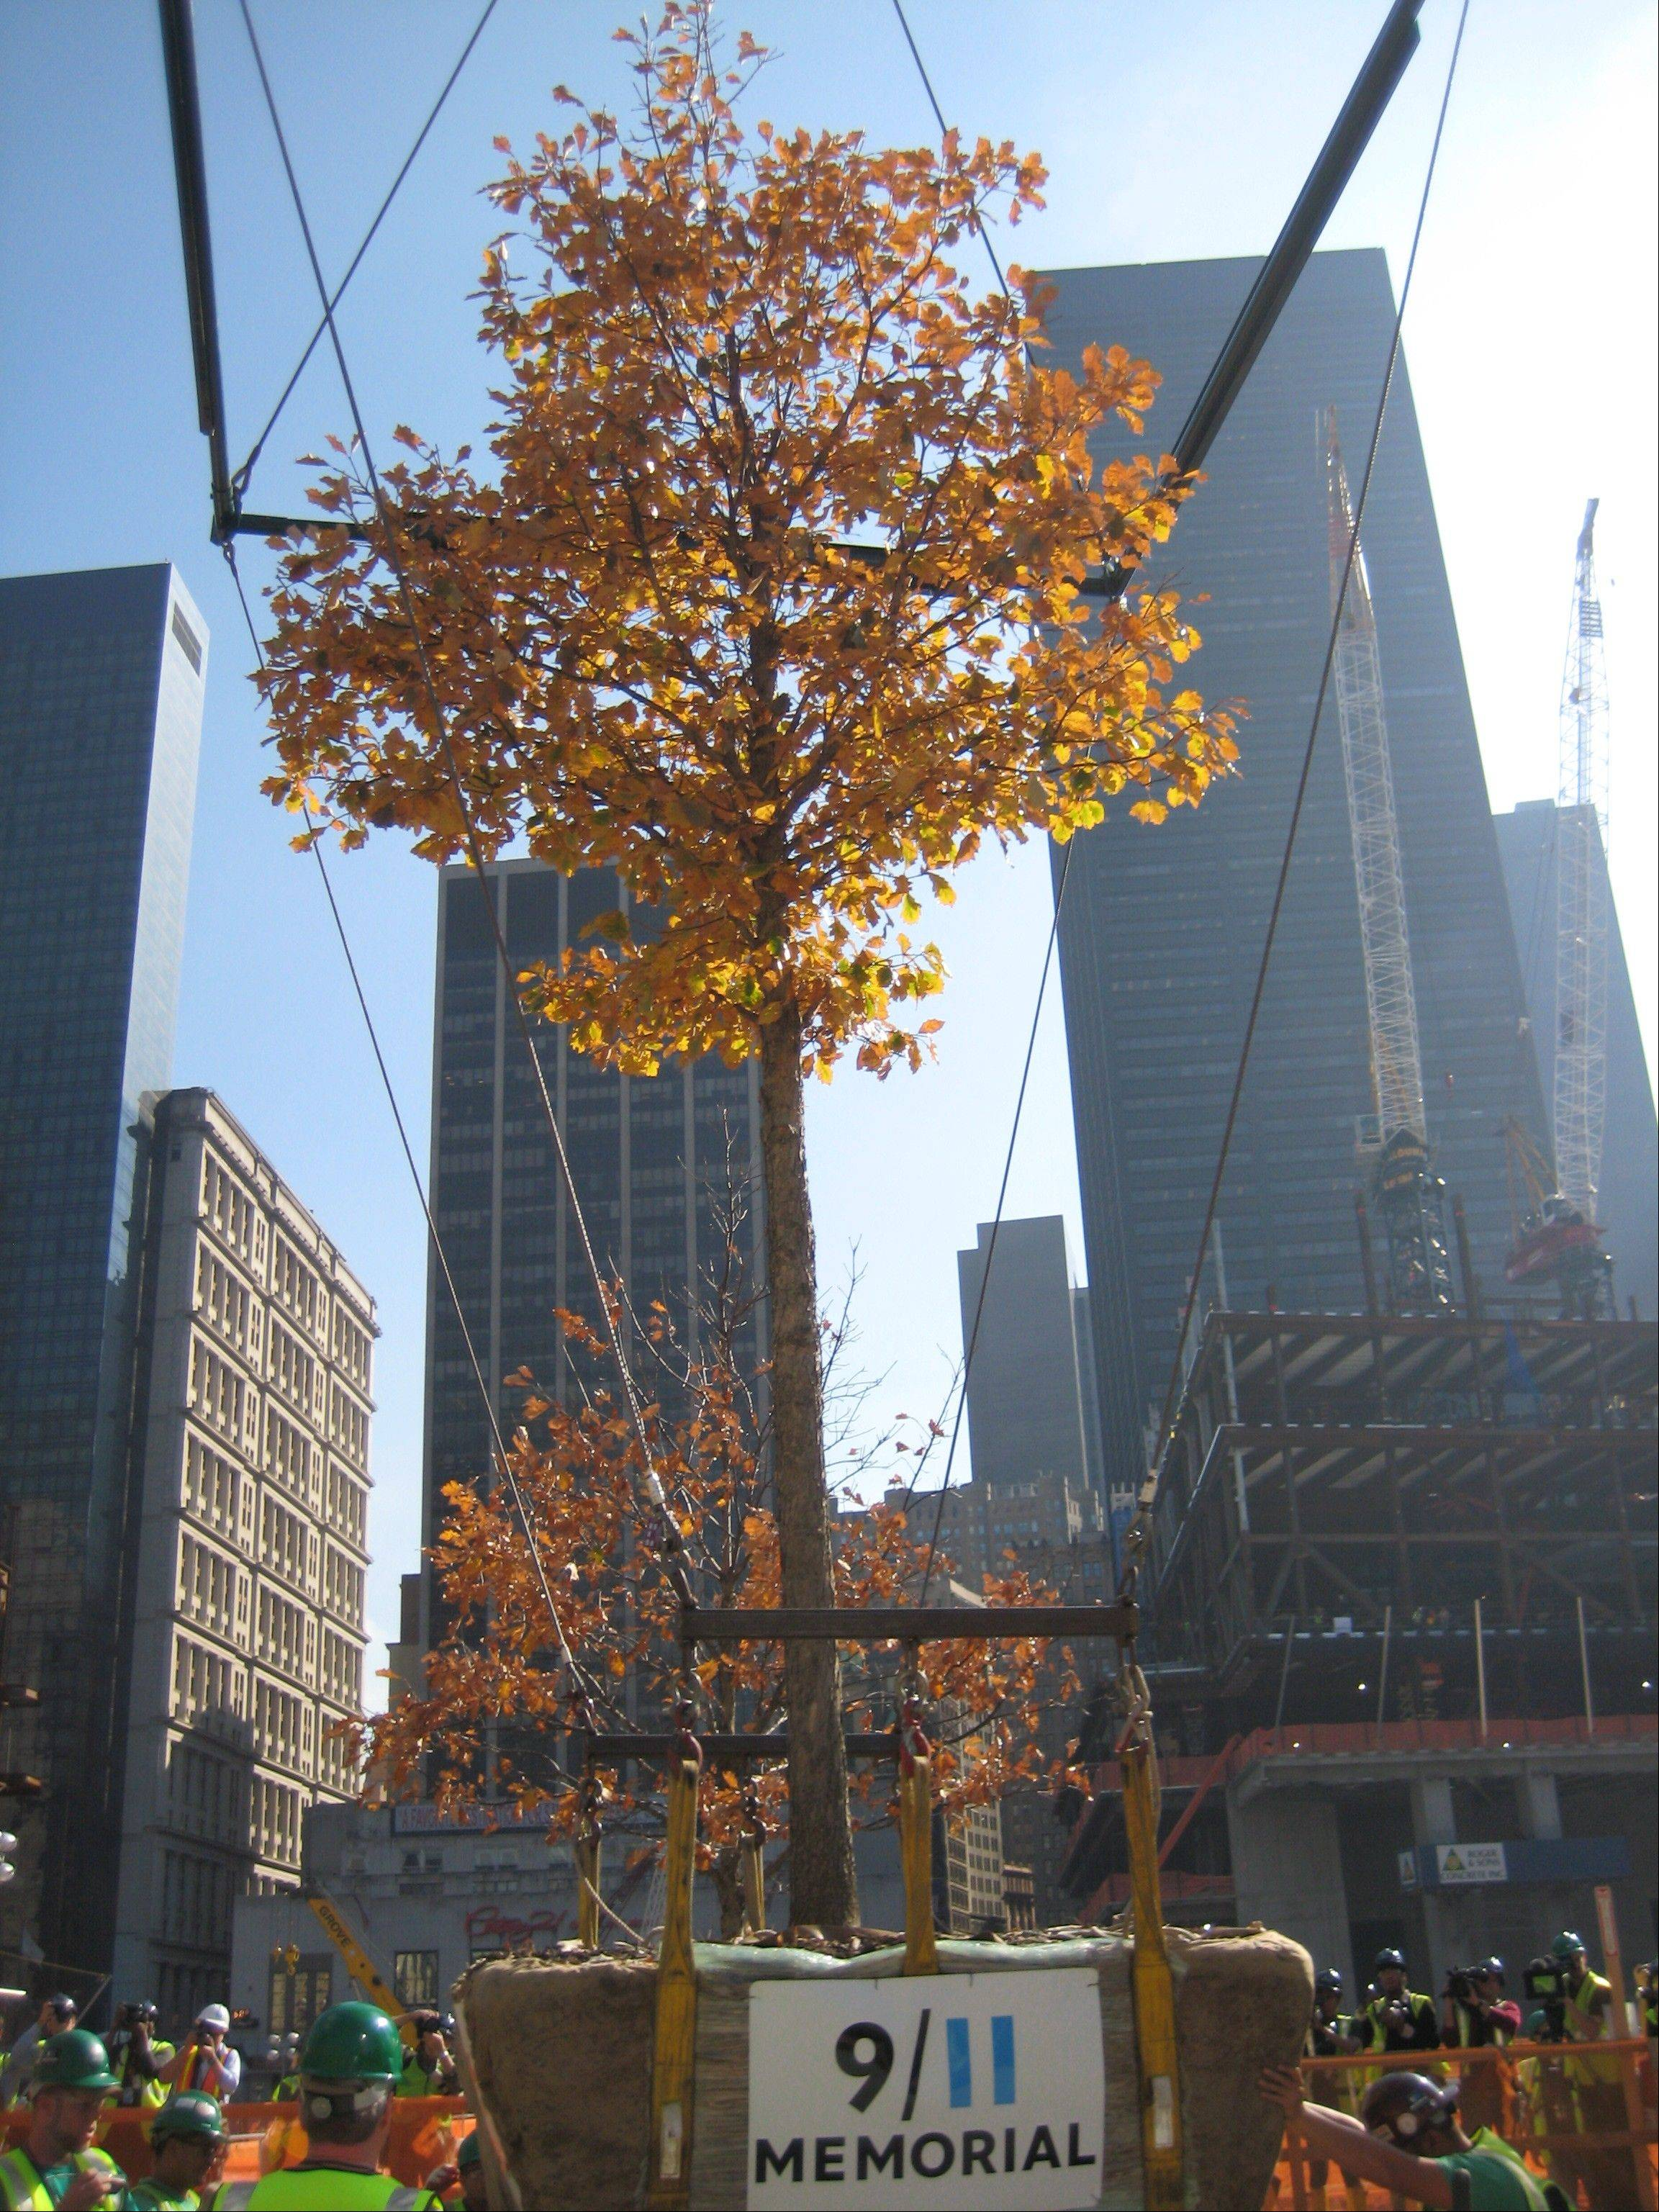 This shows an oak tree being installed at ground zero in Manhattan.